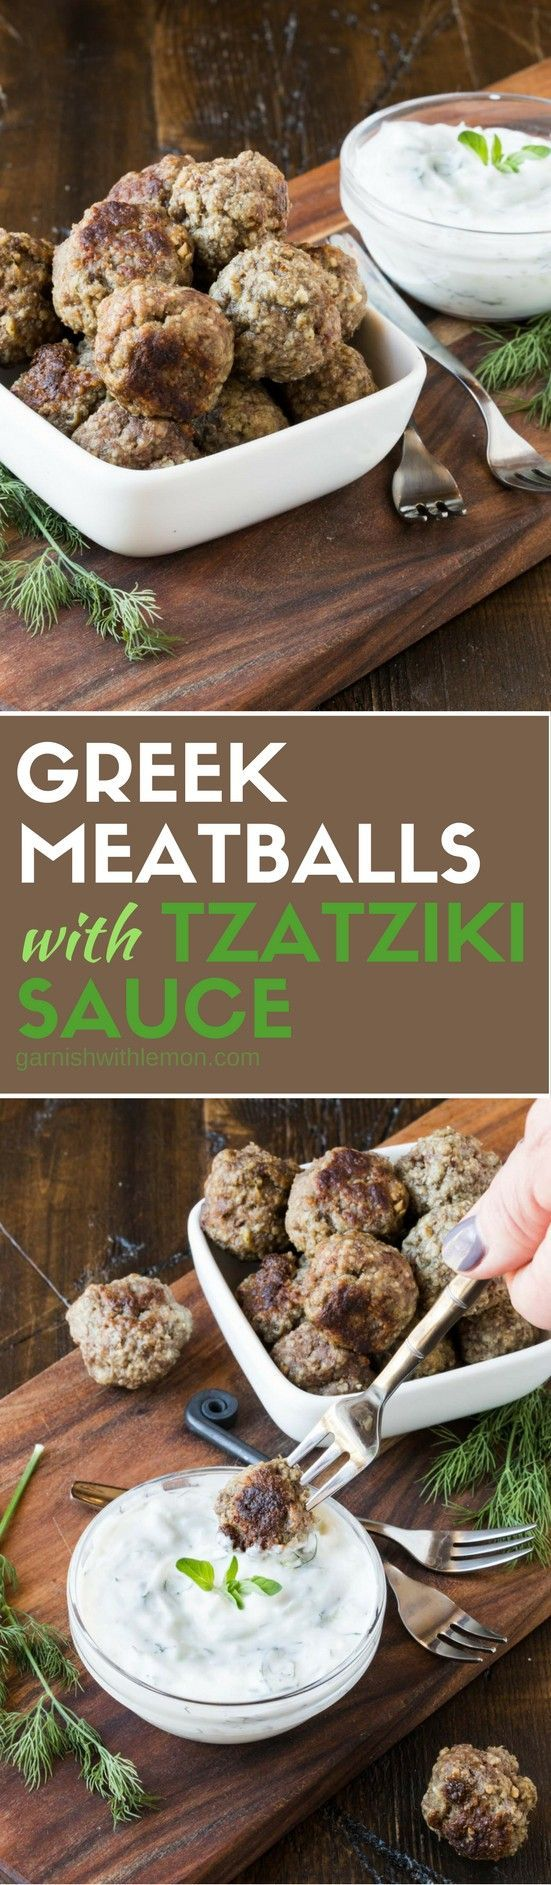 Looking for a protein-filled appetizer that everyone will devour? These Greek Meatballs with Tzatziki Sauce are a tasty addition to any party spread! Best part? You can make them ahead of time! #meatballs #appetizers #makeahead #partyfood